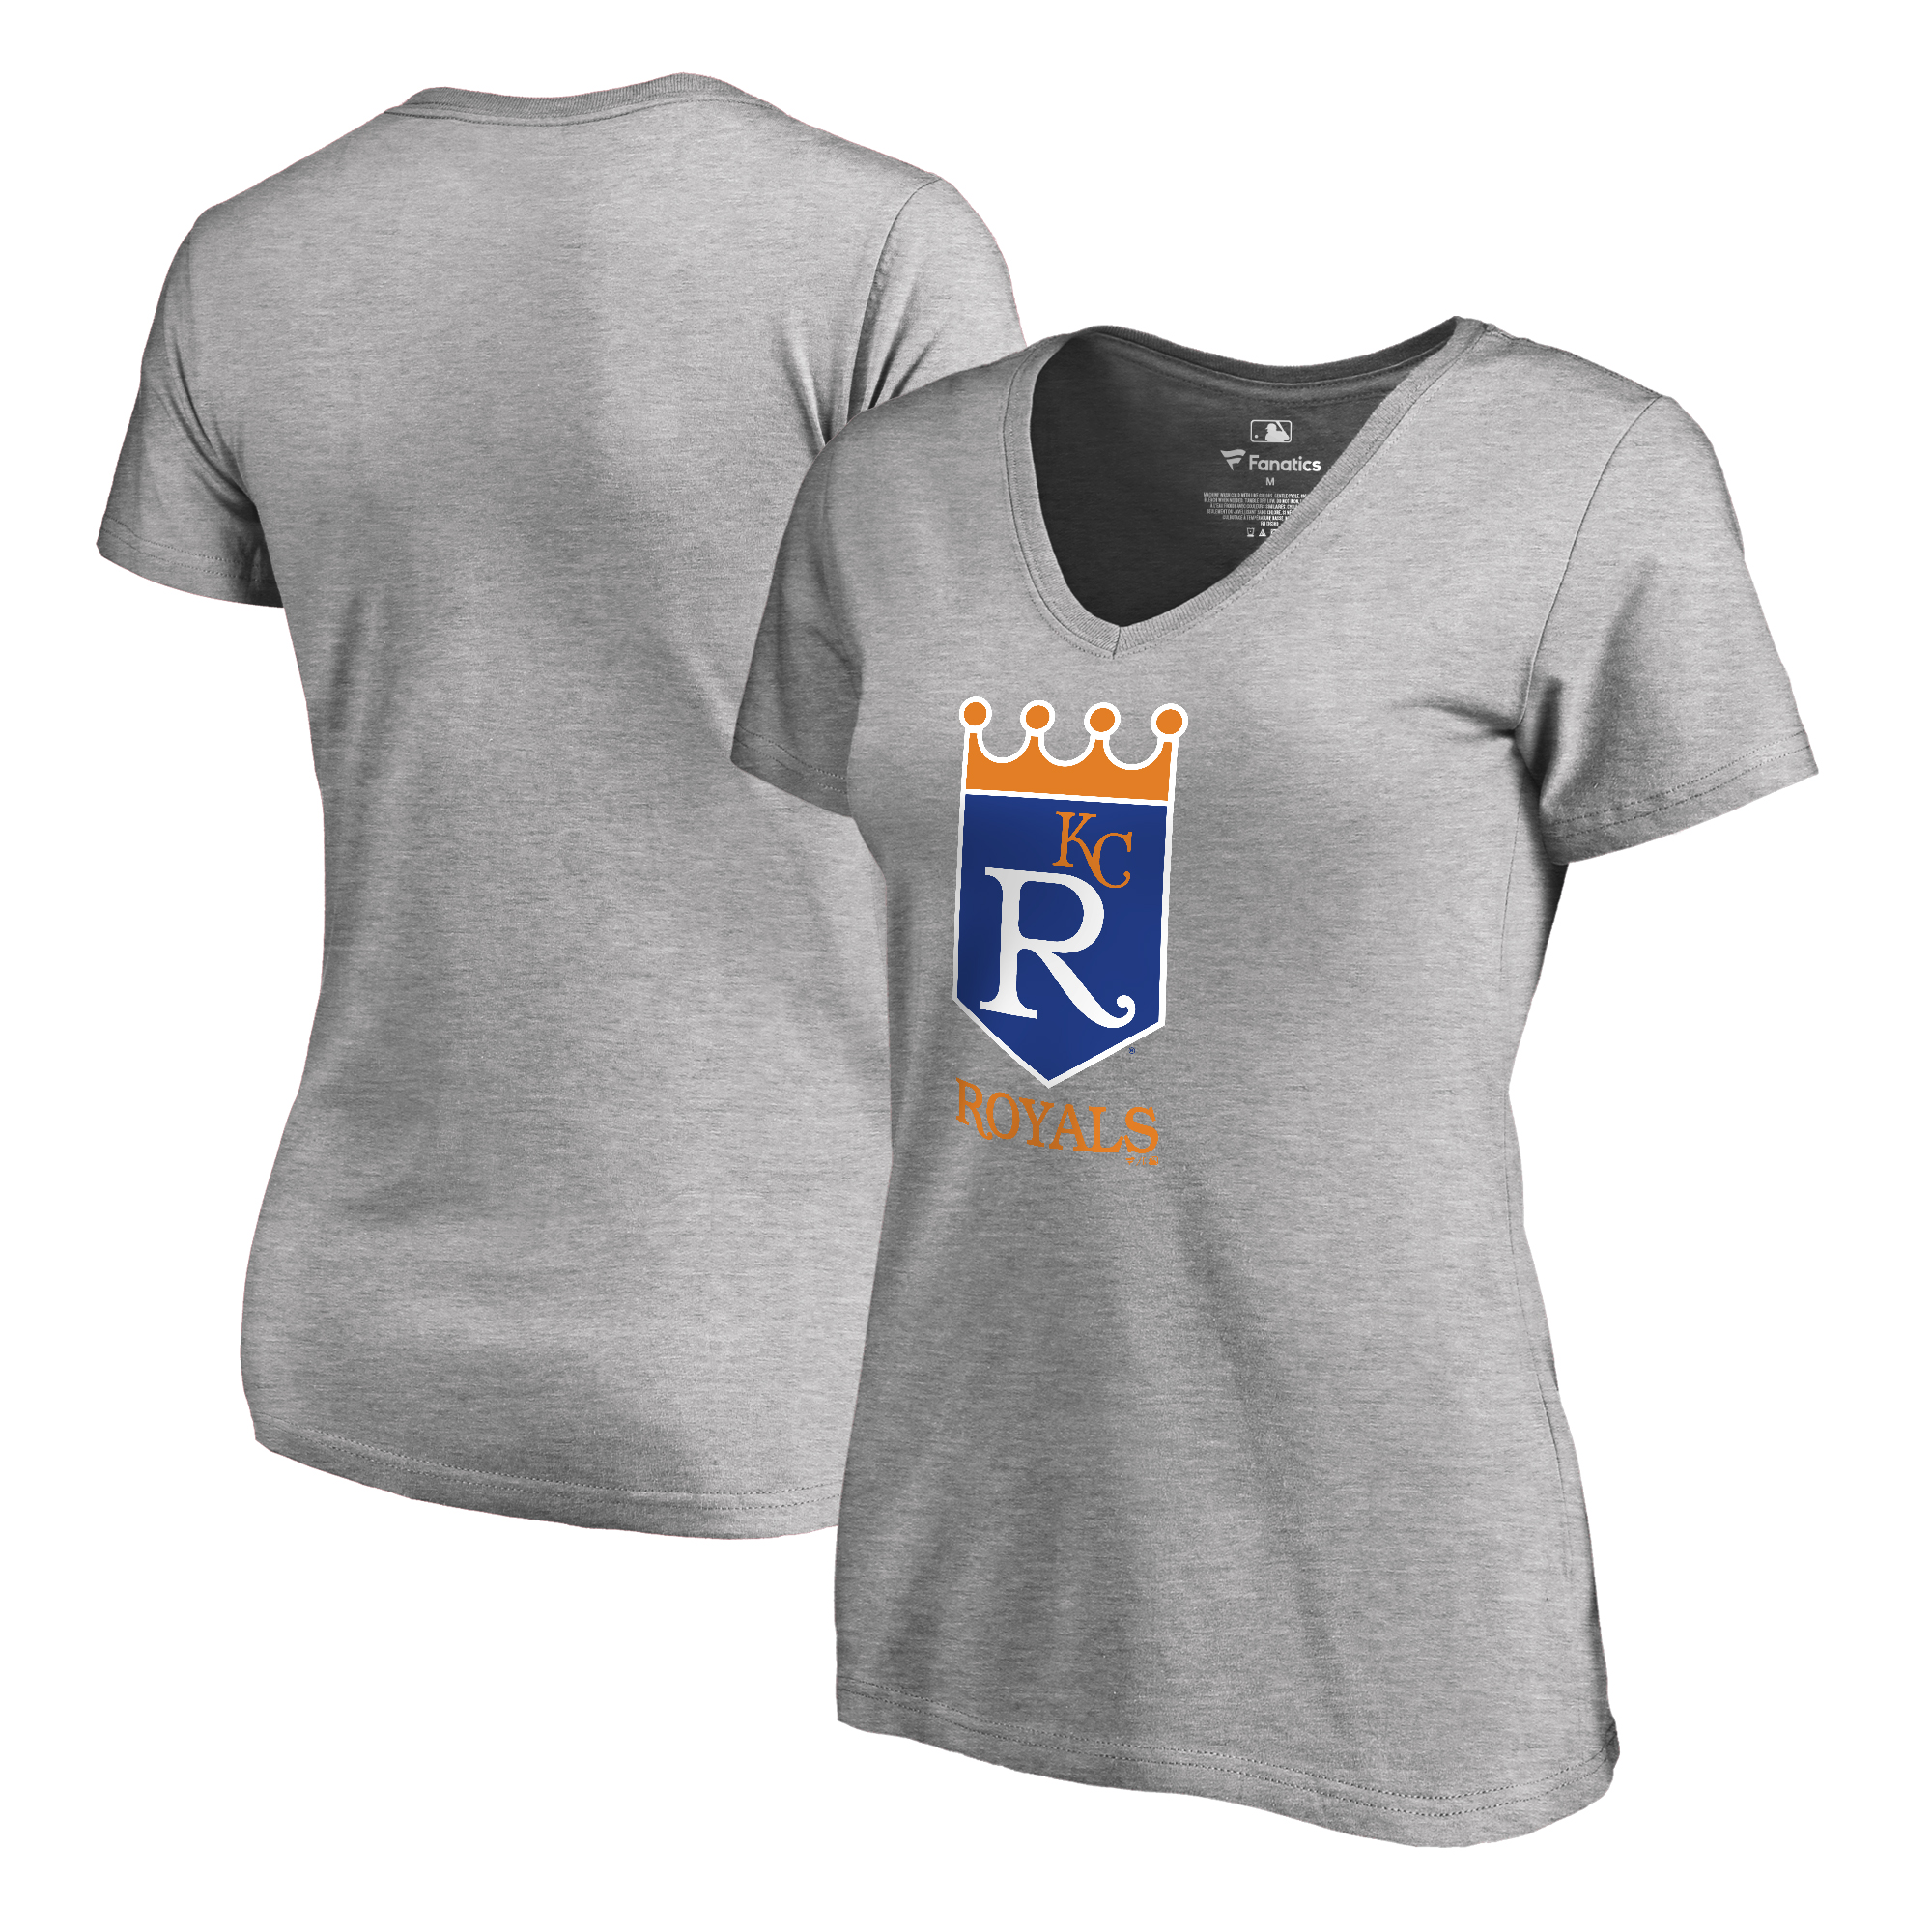 Kansas City Royals Fanatics Branded Women's Cooperstown Collection Forbes T-Shirt - Ash